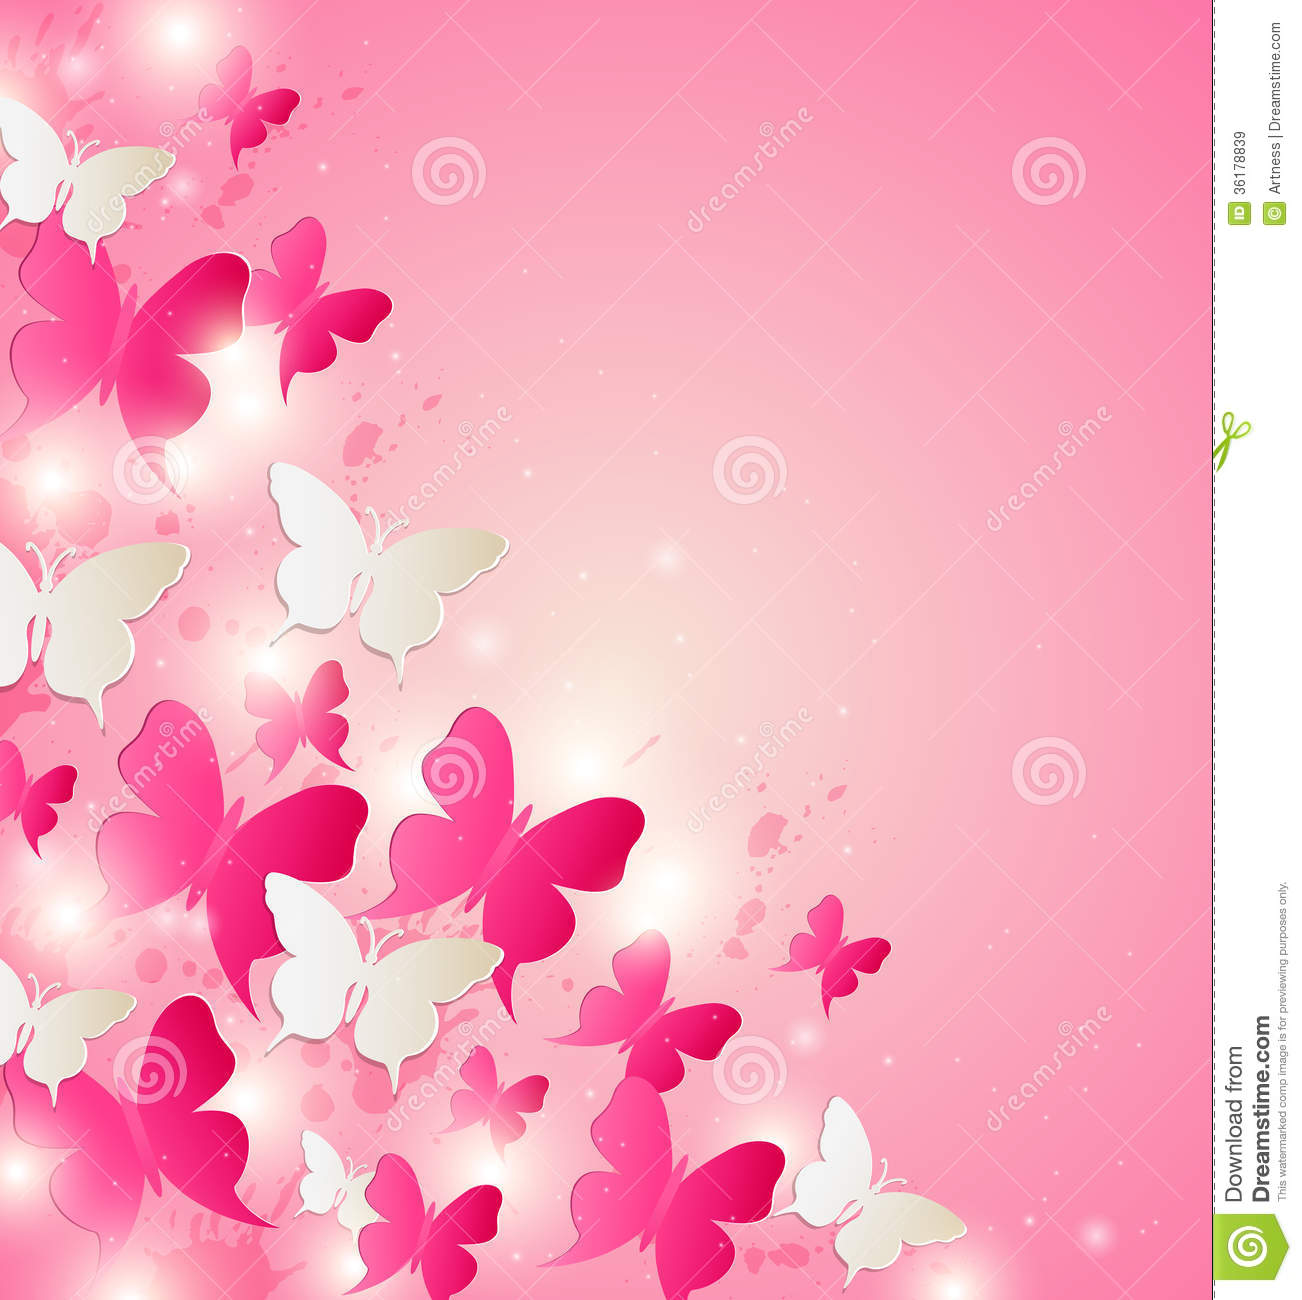 Pink butterfly vector background hd wallpapers pink butterfly vector - Abstract Background Red Vector White Butterfly Holiday Design Valentine Pink